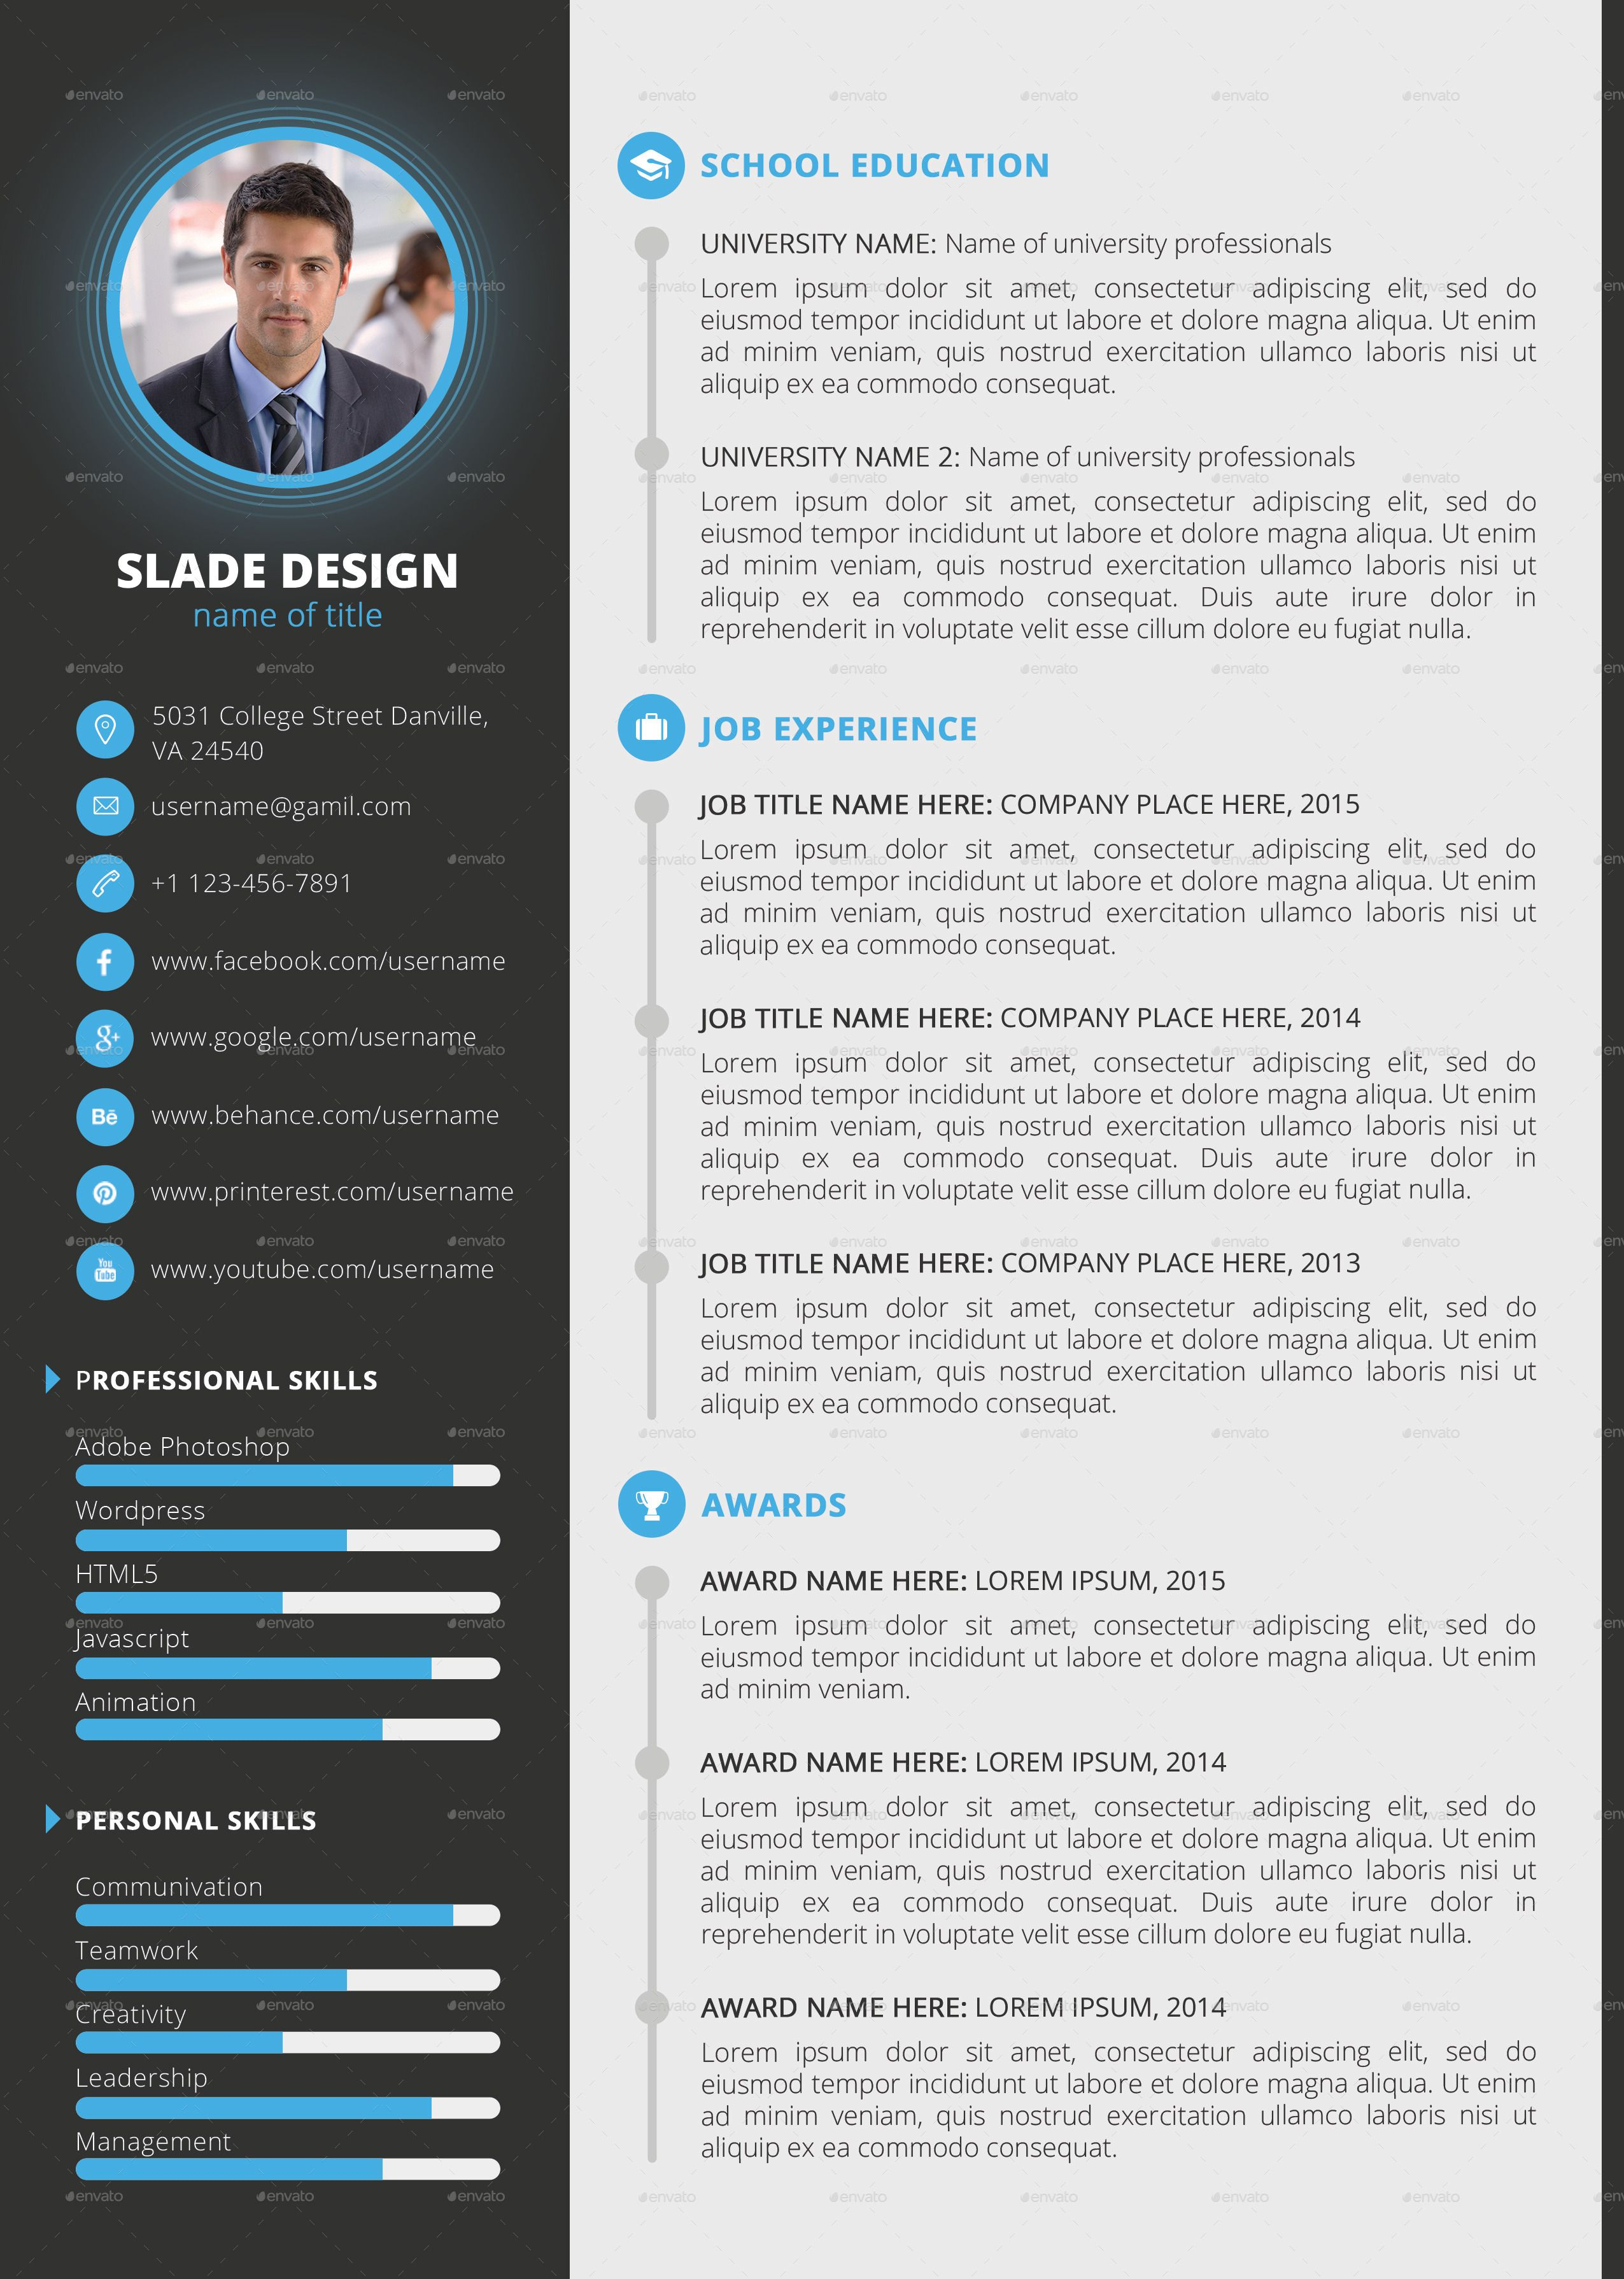 template professional cv cv templates sample template example of template professional cv cv templates sample template example of beautiful excellent professional curriculum vitae resume cv